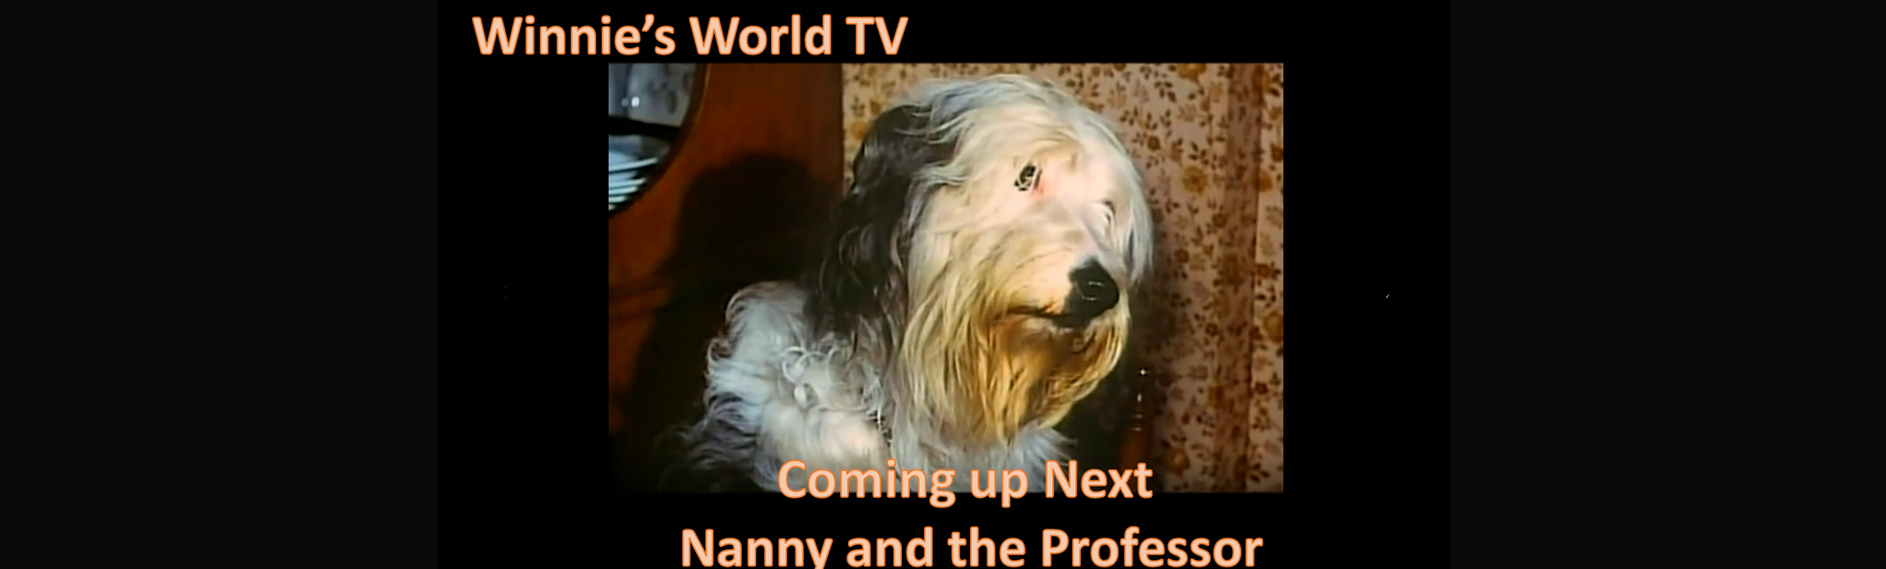 Winnies World and Nanny and the Professo